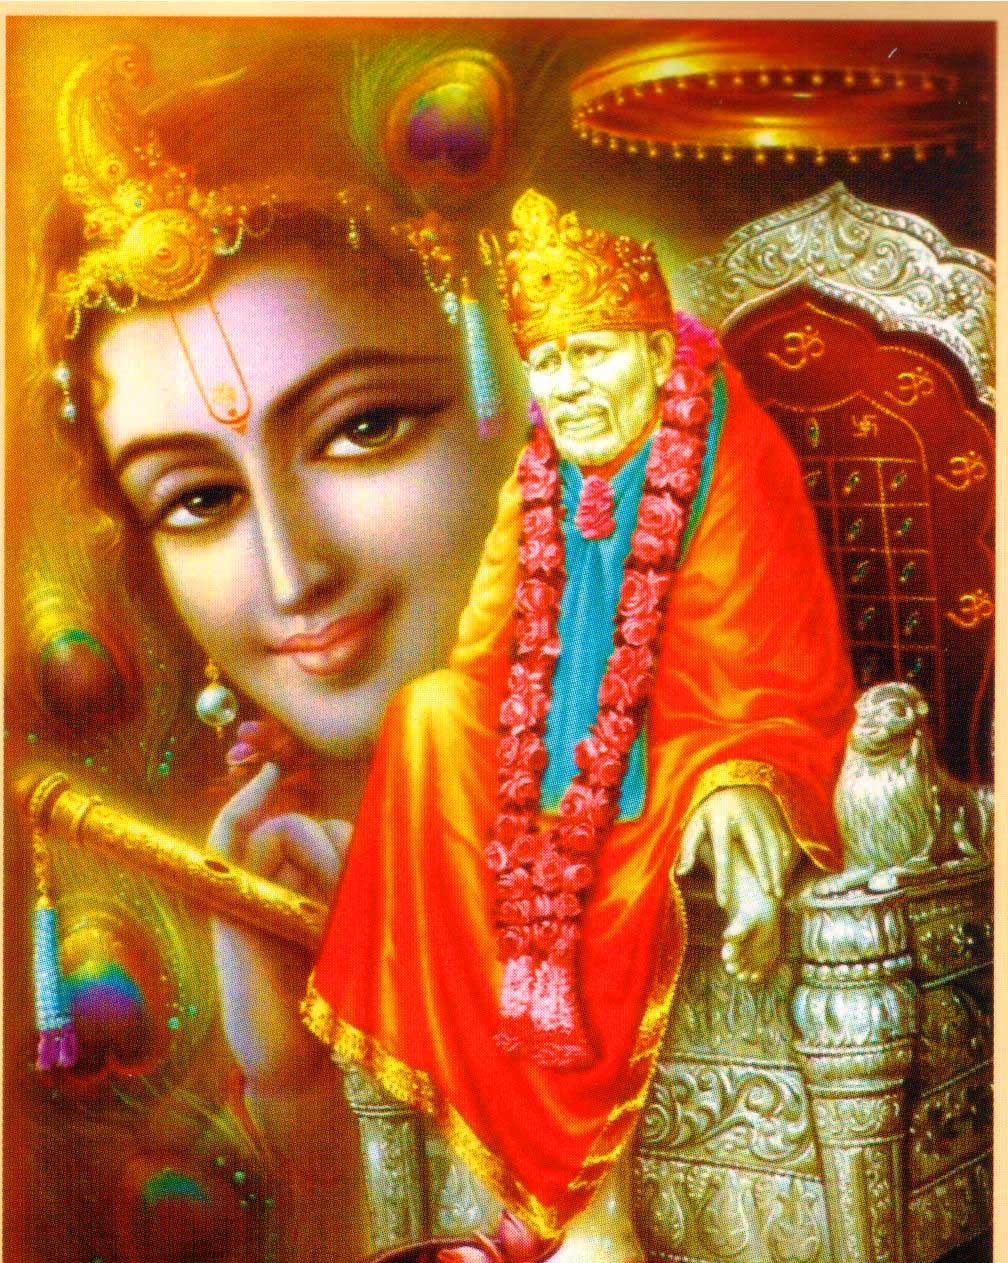 Hindu God Images For Android Mobile Phone Wallpaper Pics Free Download